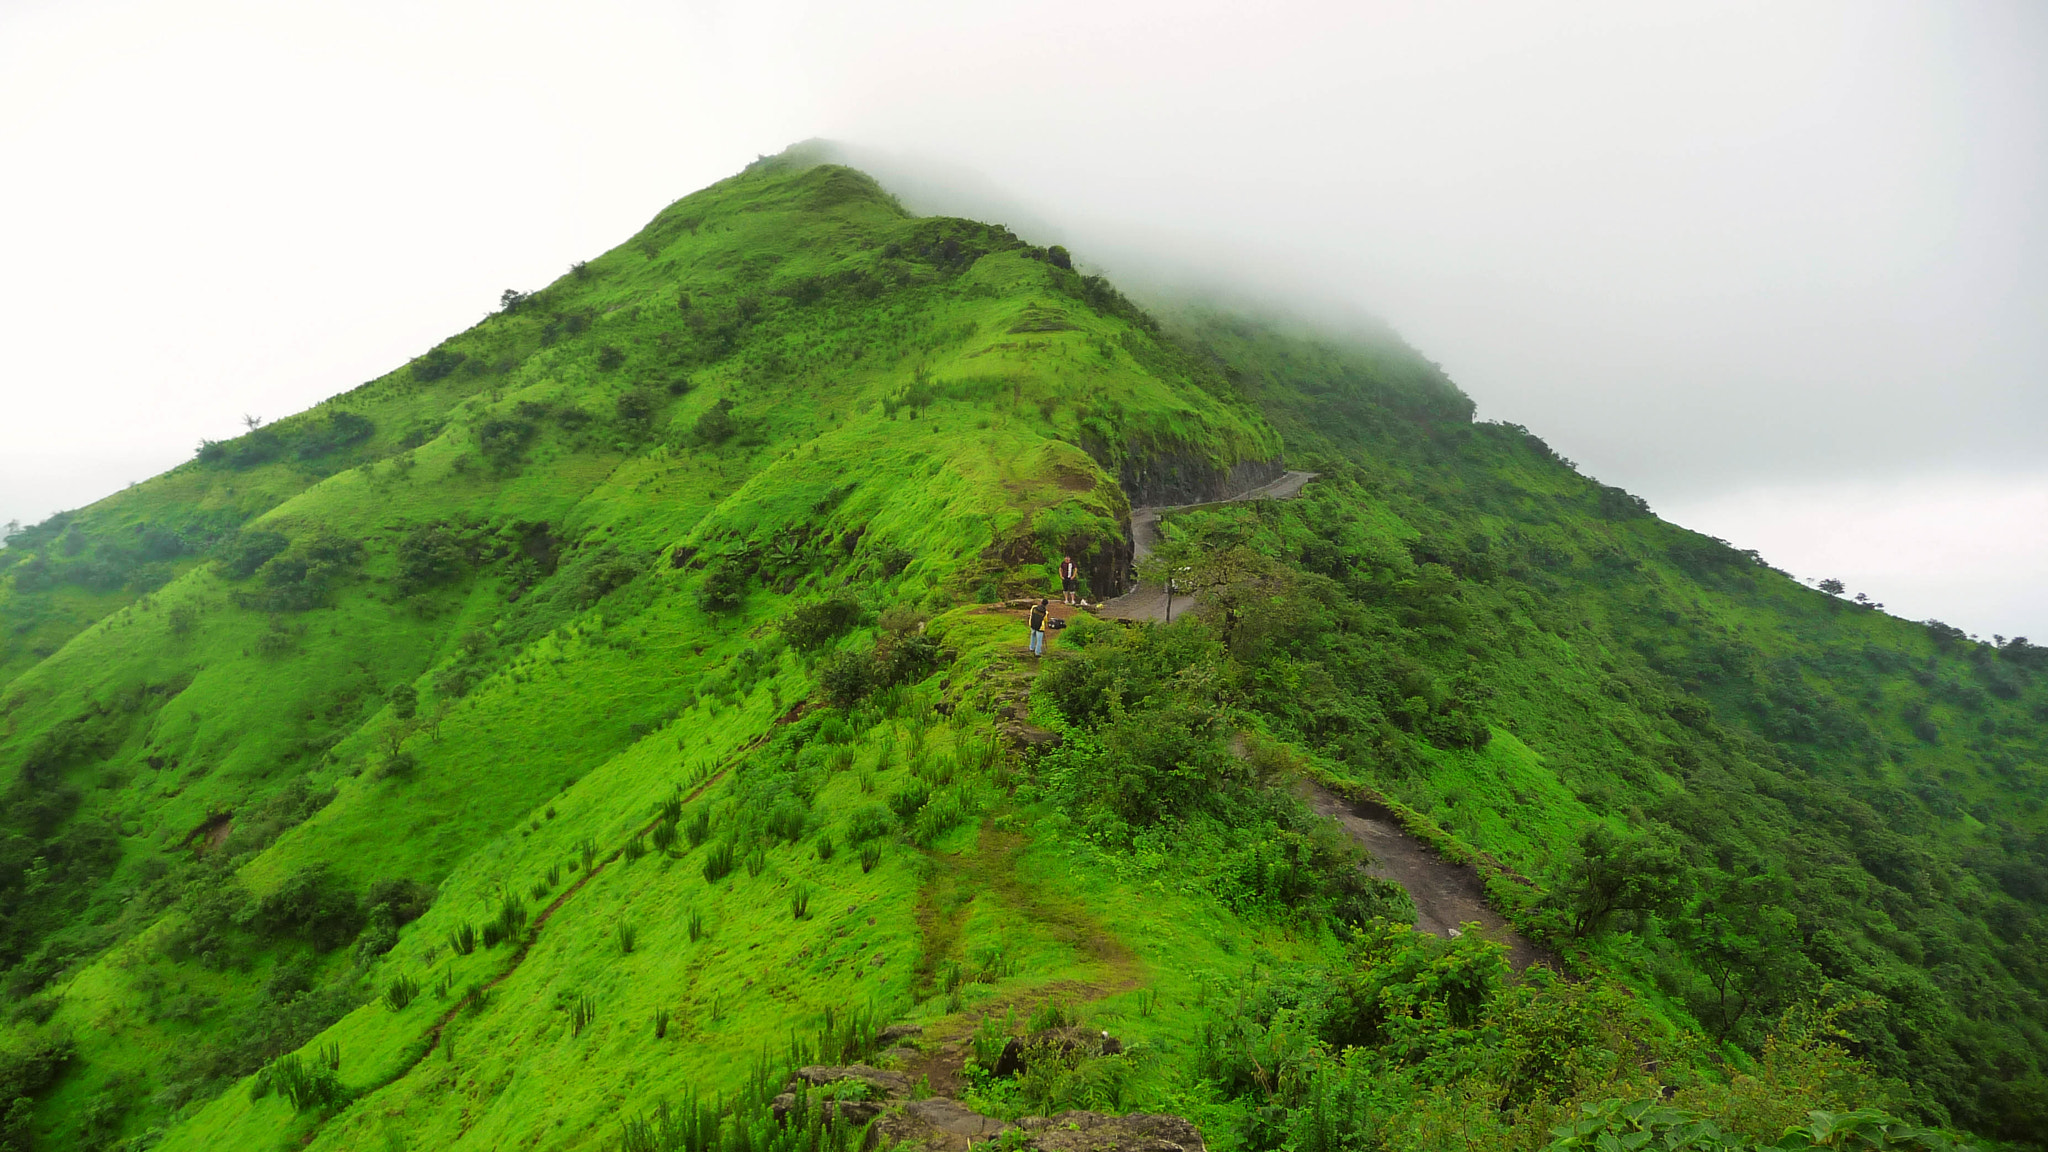 Photograph Singhad Hills by Mohit Yadav on 500px